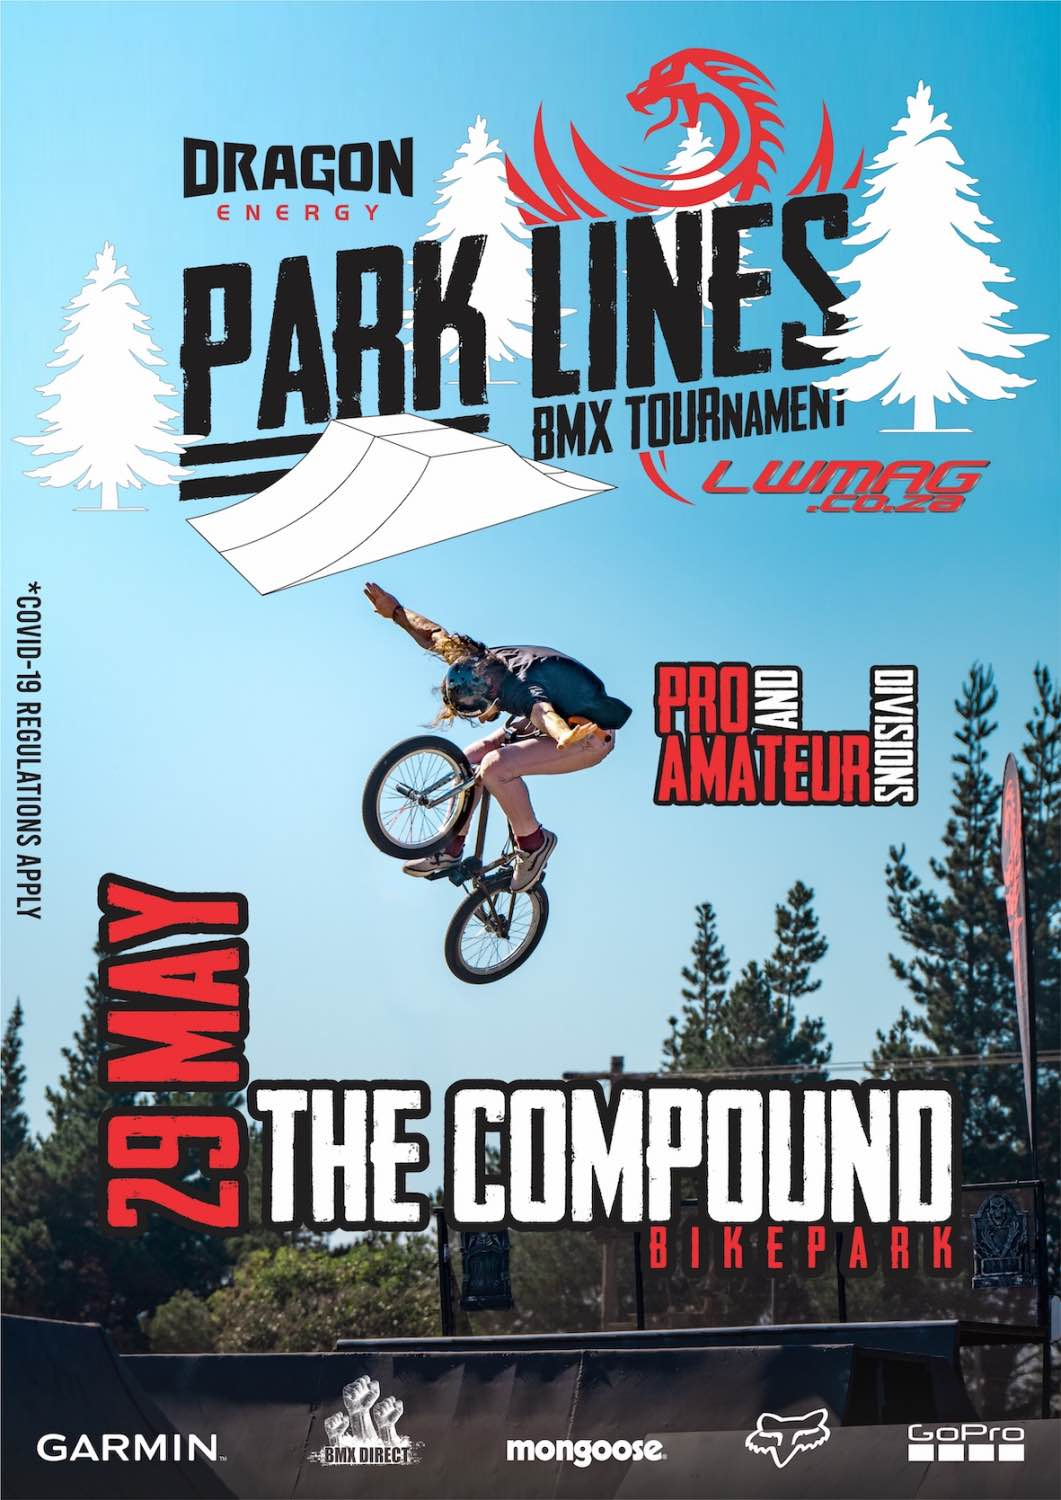 LW Mag and Dragon Energy Drink are proud to announce the upcoming Park Lines BMX Tournament. Taking place on 29 May 2021 where the country's best Pro and Amateur riders will battle it out for their share of the prize purse and to see who will be crowned event champions.